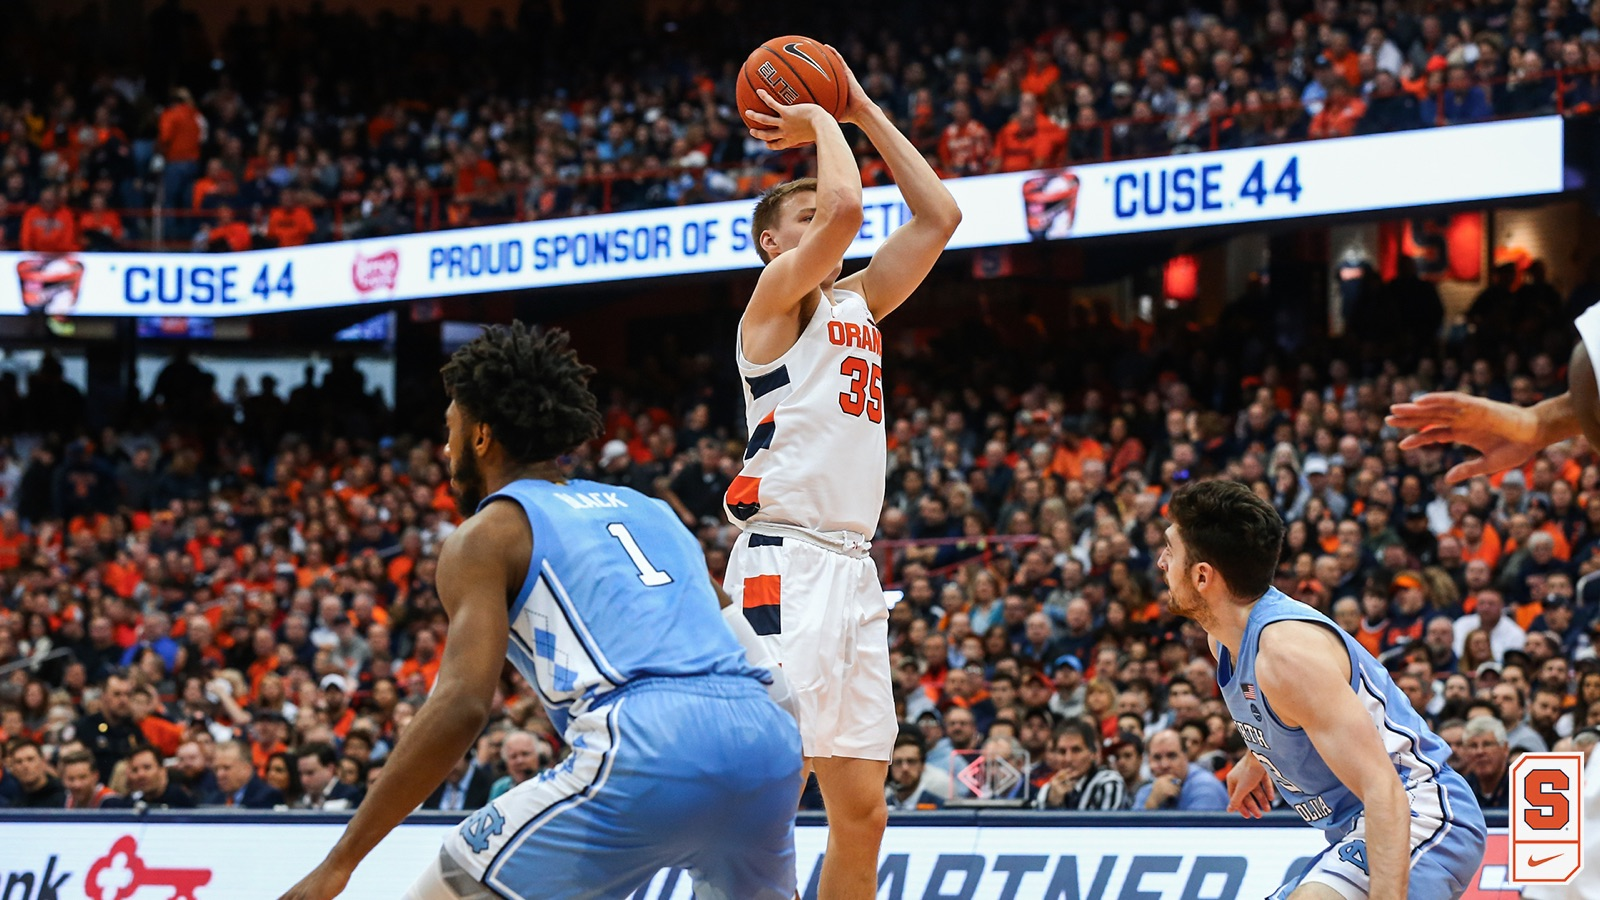 Syracuse falls to North Carolina at the Carrier Dome, 92-79 (full coverage)